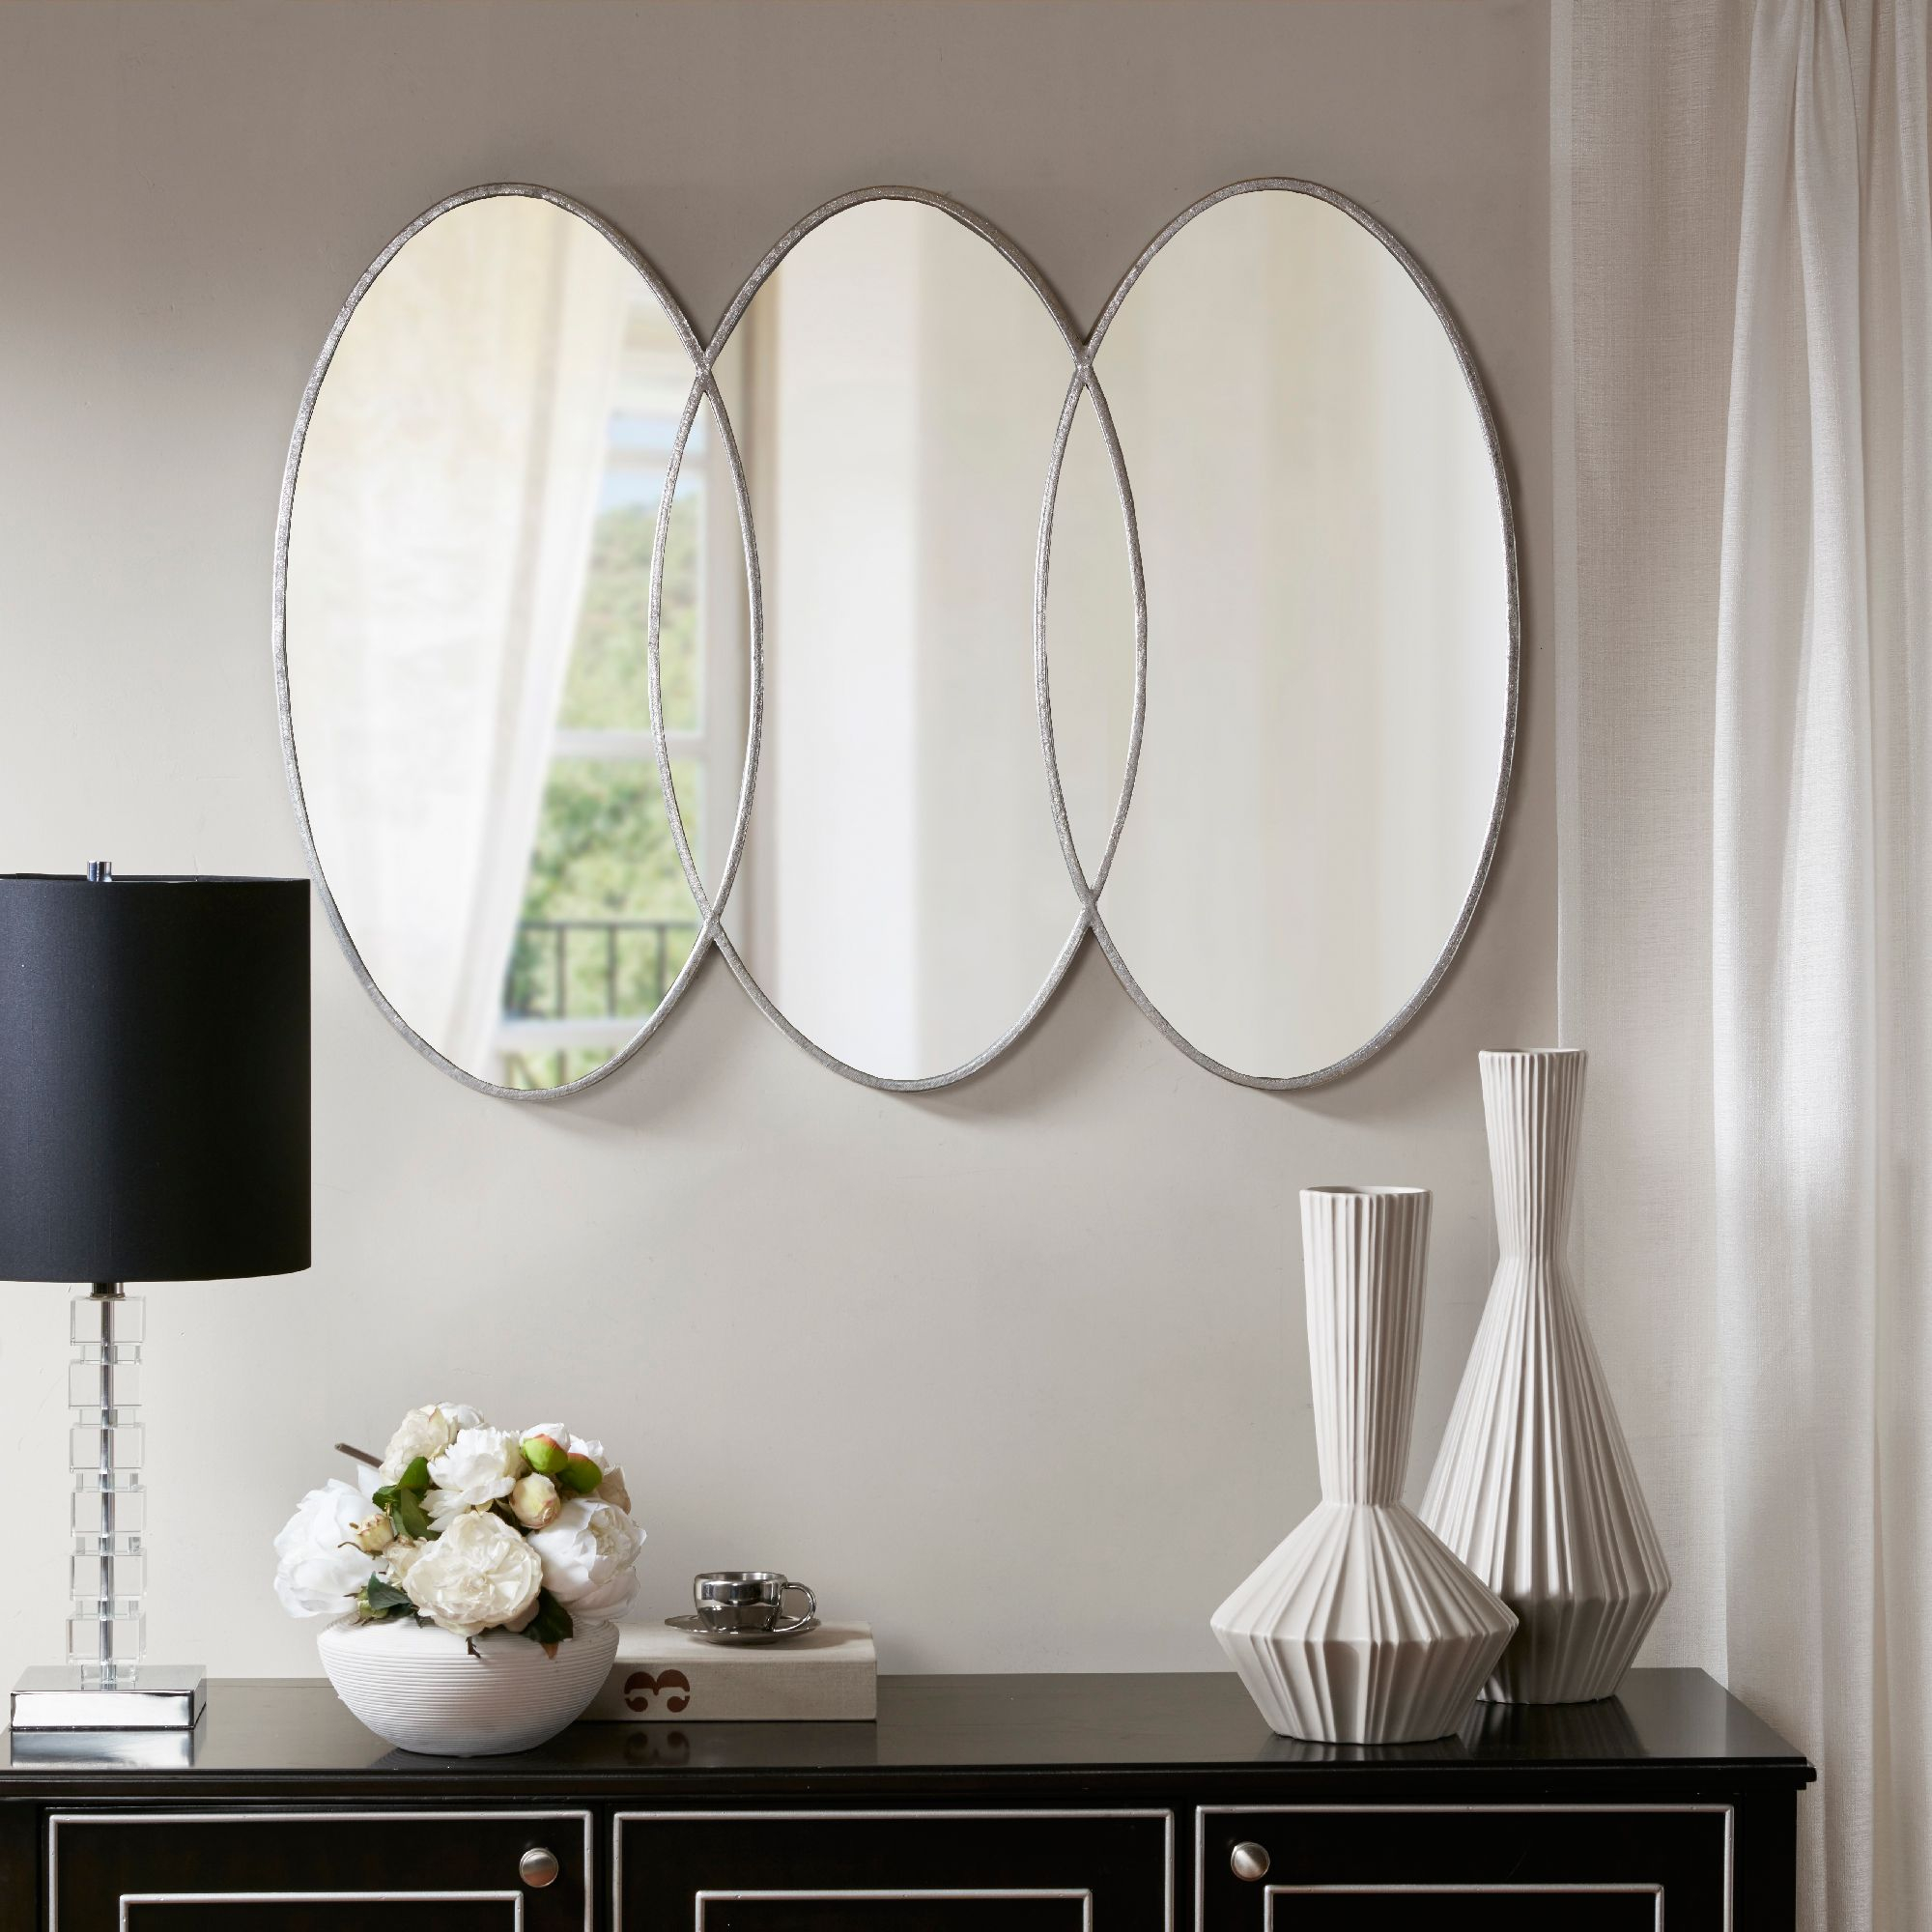 40 inch mirror frameless this contemporary eclipse wall mirror from signature reflects your modern taste while adding dimension to the room carefully constructed with an antique home design 30inch 40inch in